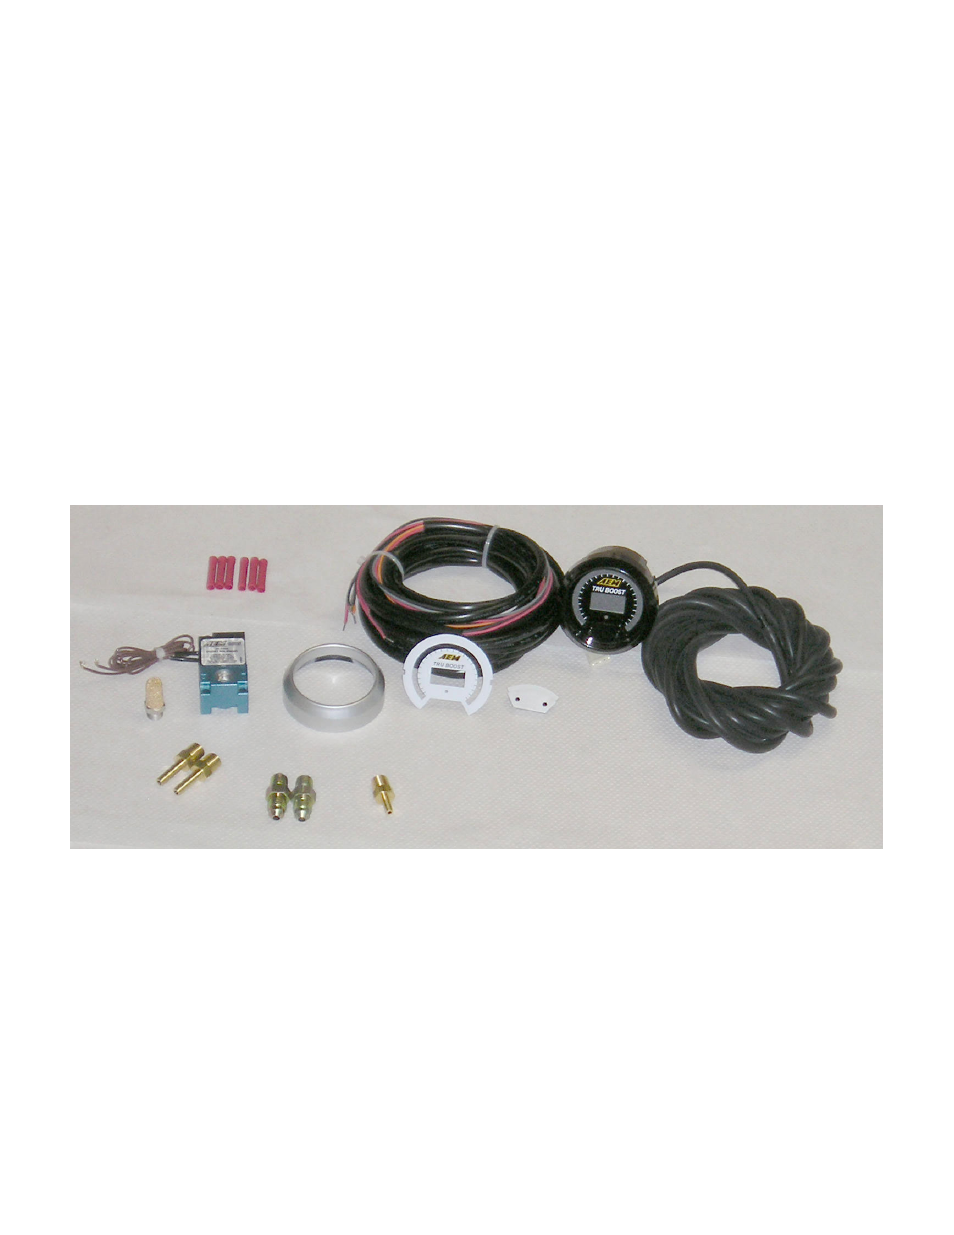 Beautiful Pk40000 Webcam 6 Pin Out Pictures - Simple Wiring Diagram ...